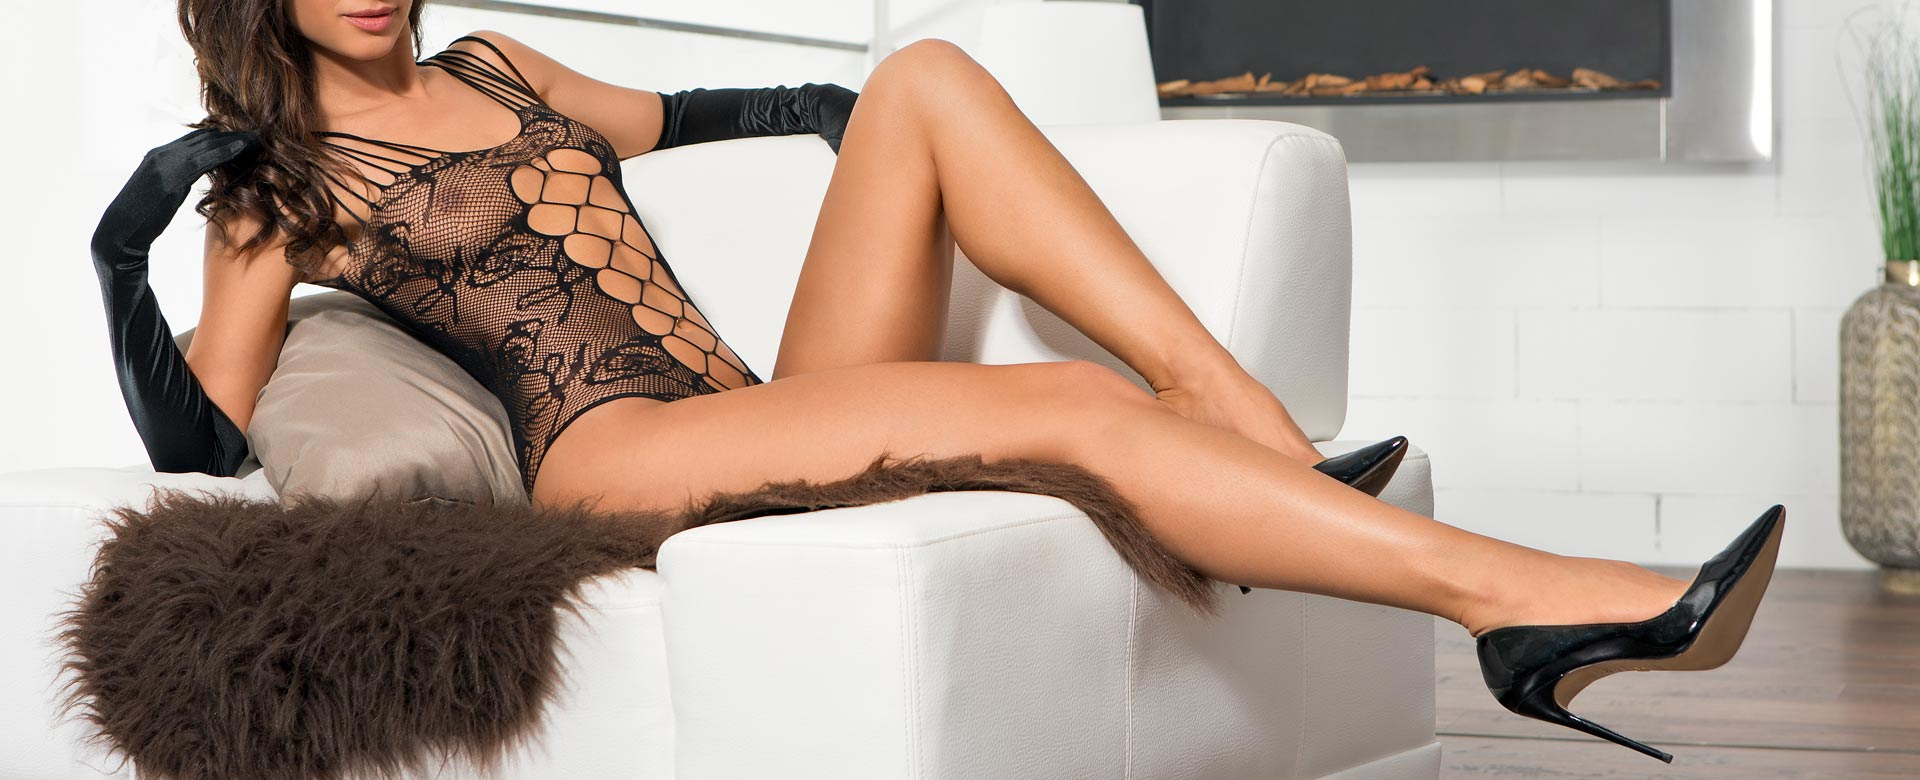 Rassige Escort Lady Esther